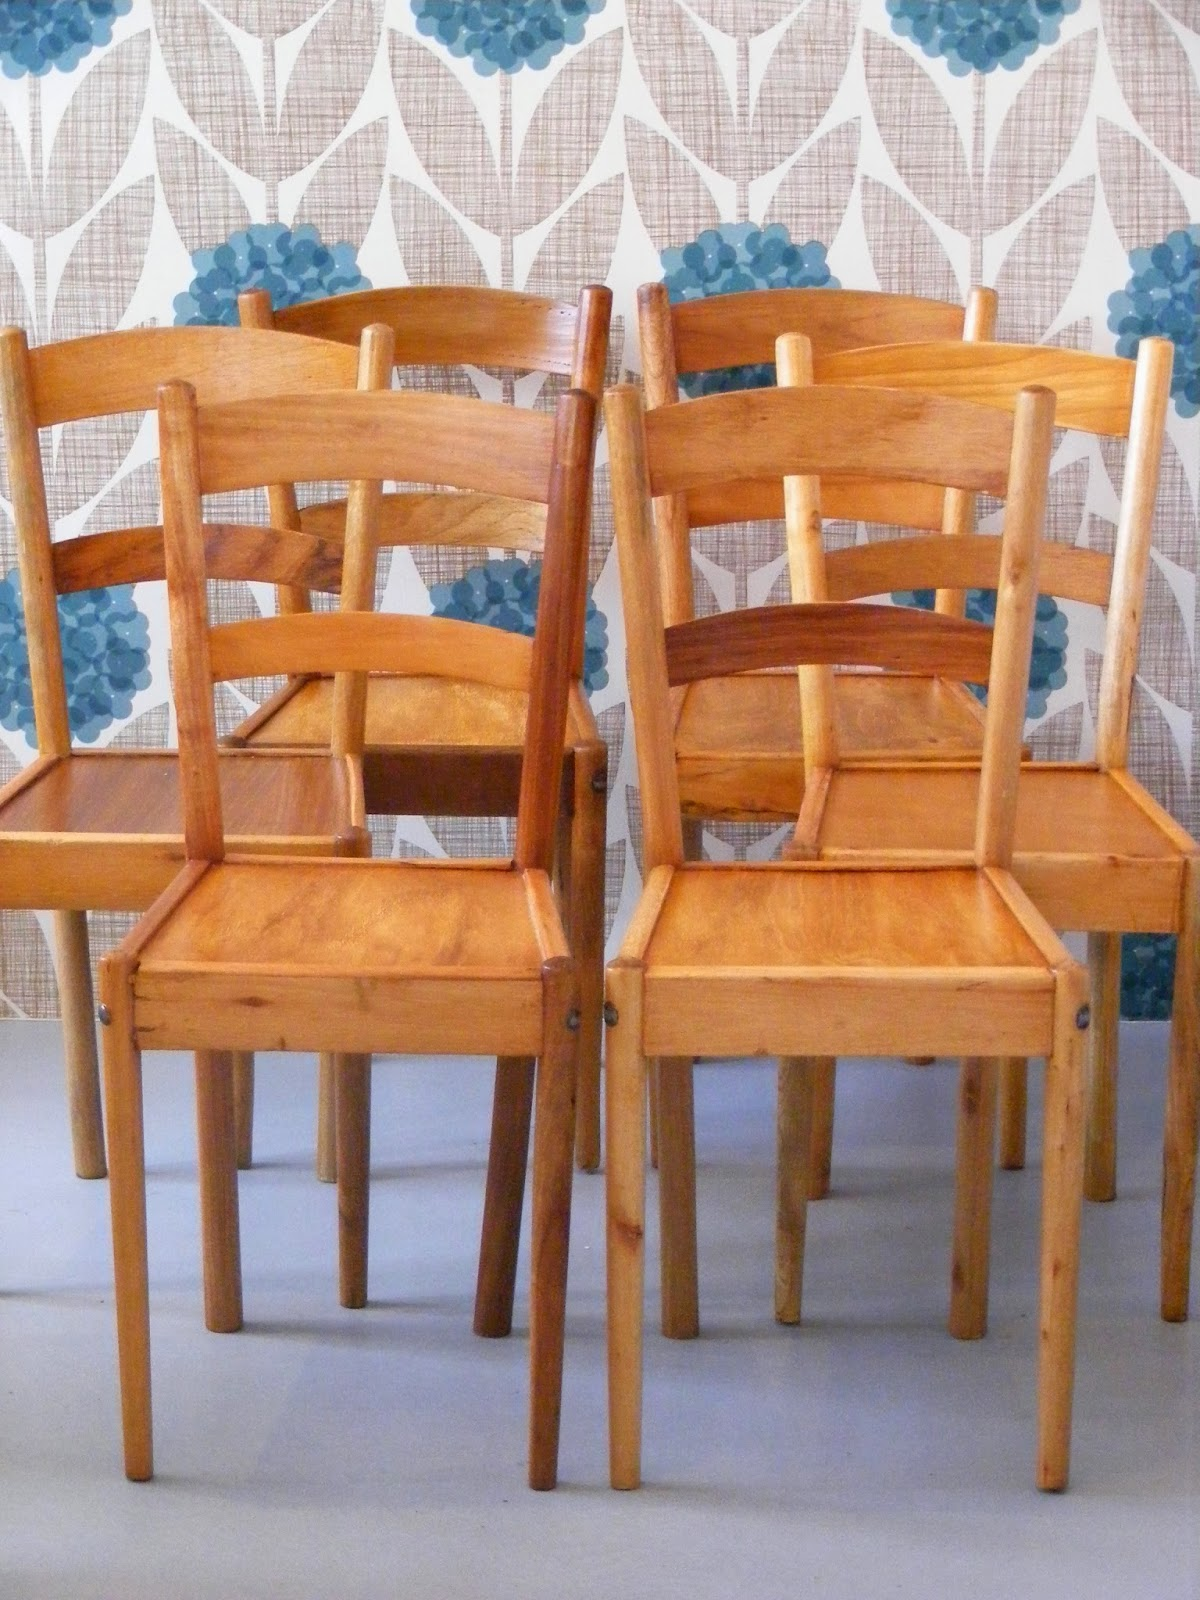 A set of 6 original Globe chairs. The Globe Chair was originally designed and patented in 1921 and made in Durban South Africa until the early 1940u0027s & VAMP FURNITURE: This weeks new furniture stock at Vamp - 01 November ...